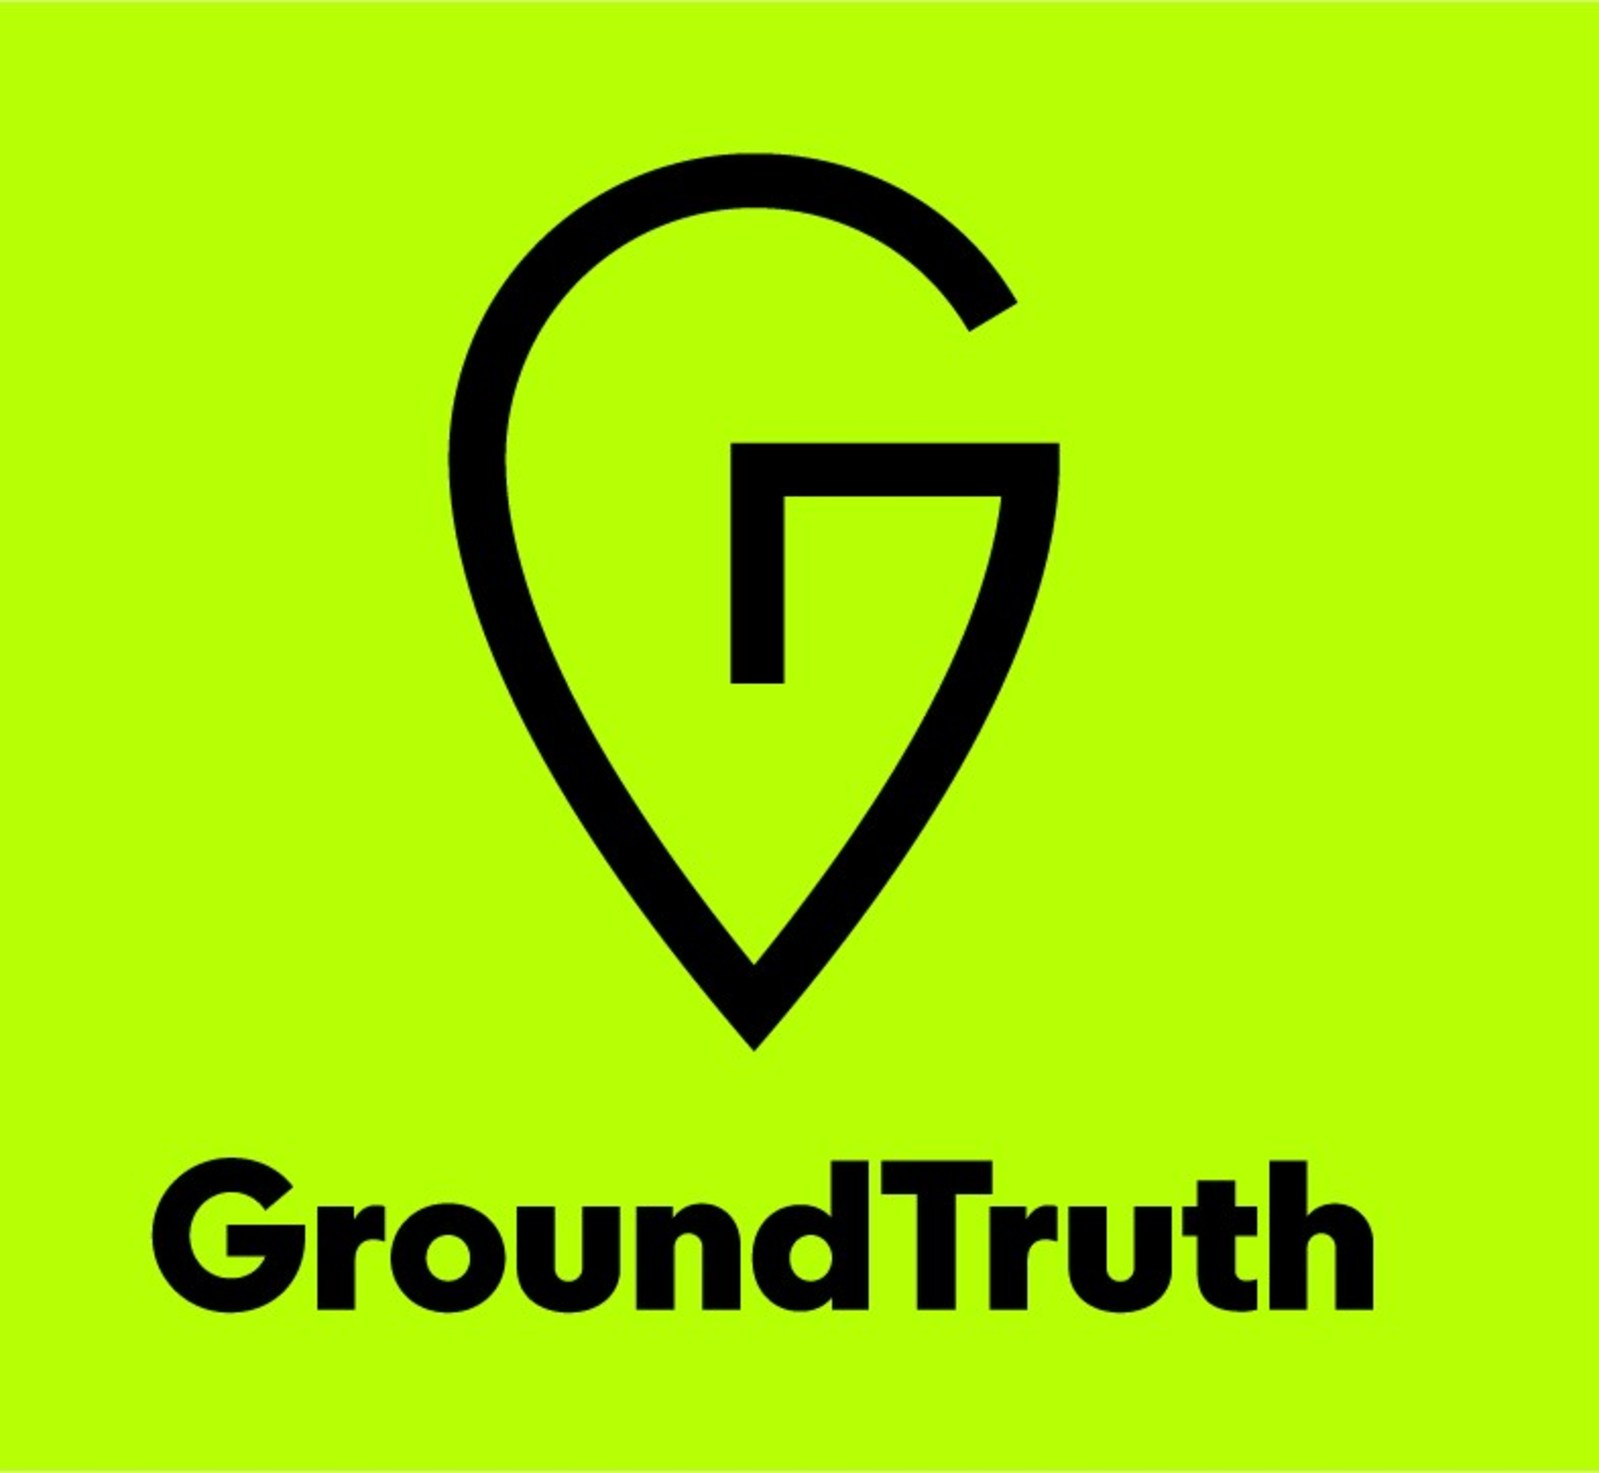 https://www.groundtruth.com/